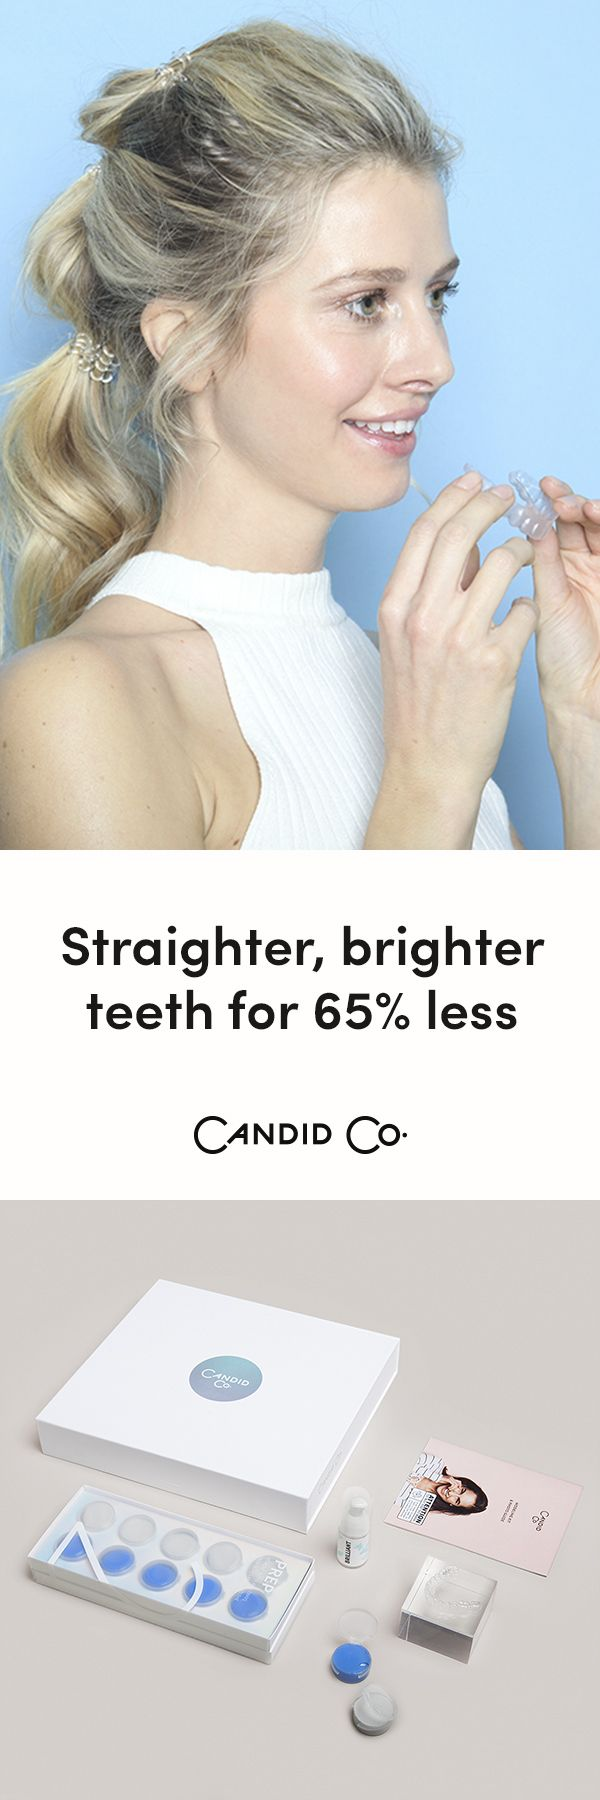 Get the straight teeth you've always wanted with Candid's clear aligners delivered directly to your door ... for 65% less than braces. Treatment time averages just 6 months ✨